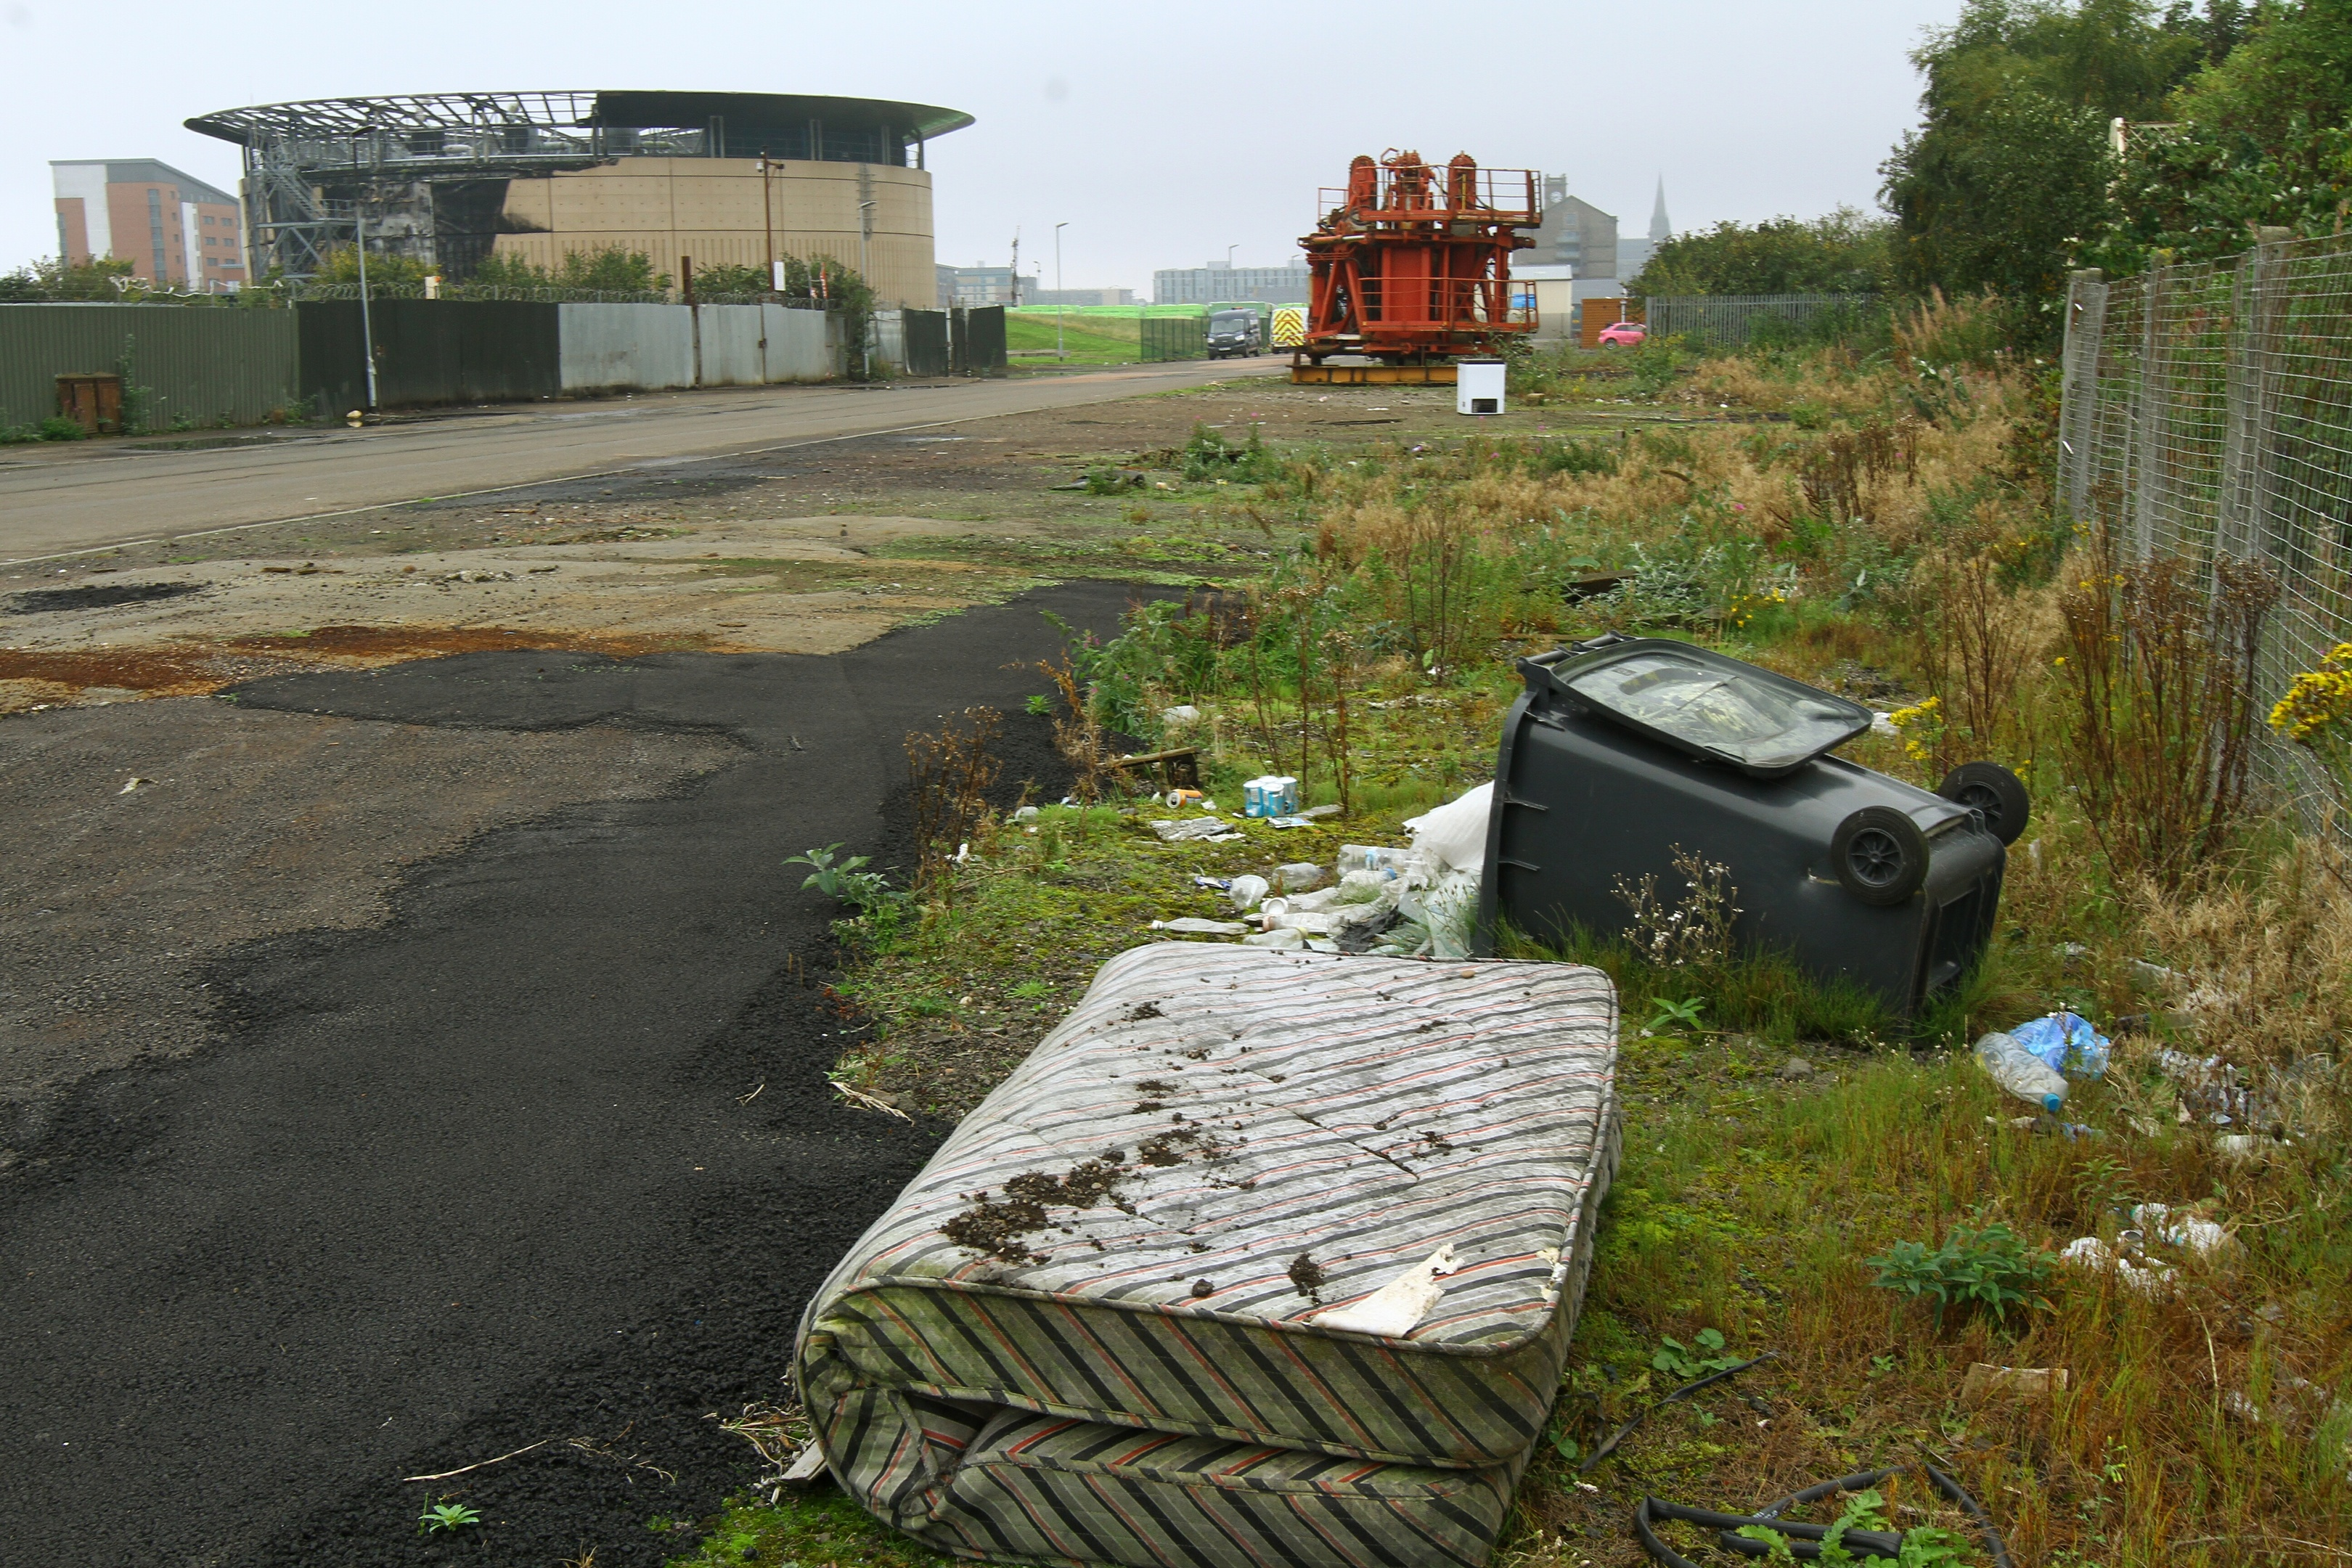 Weeds and rubbish just yards from where cruise passengers arrive in Dundee.